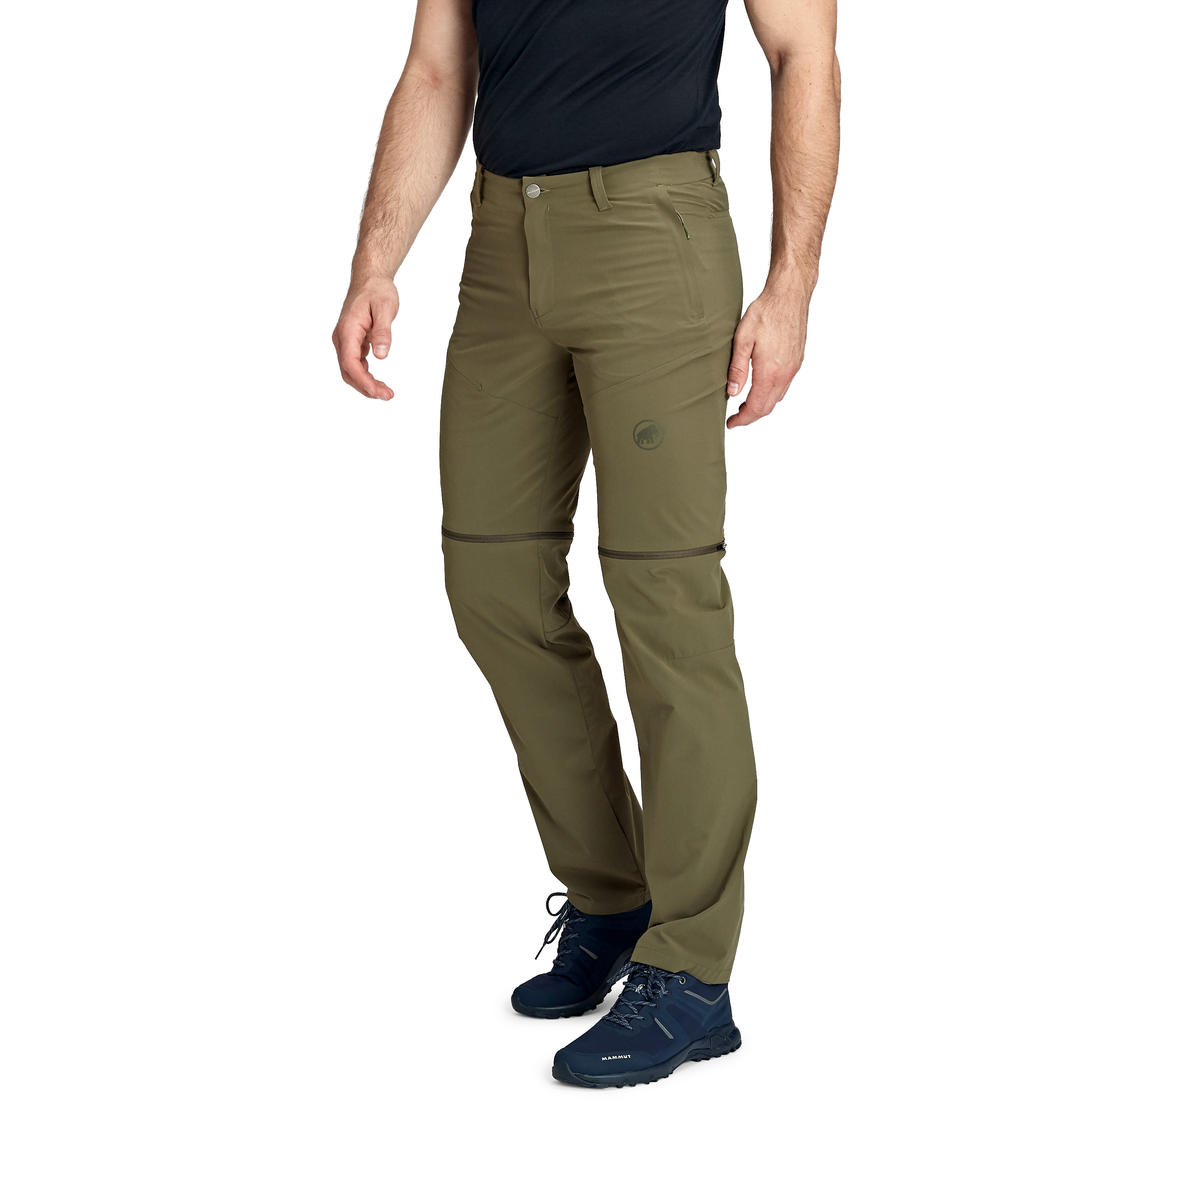 Mammut Mens Runbod Hiking Pants